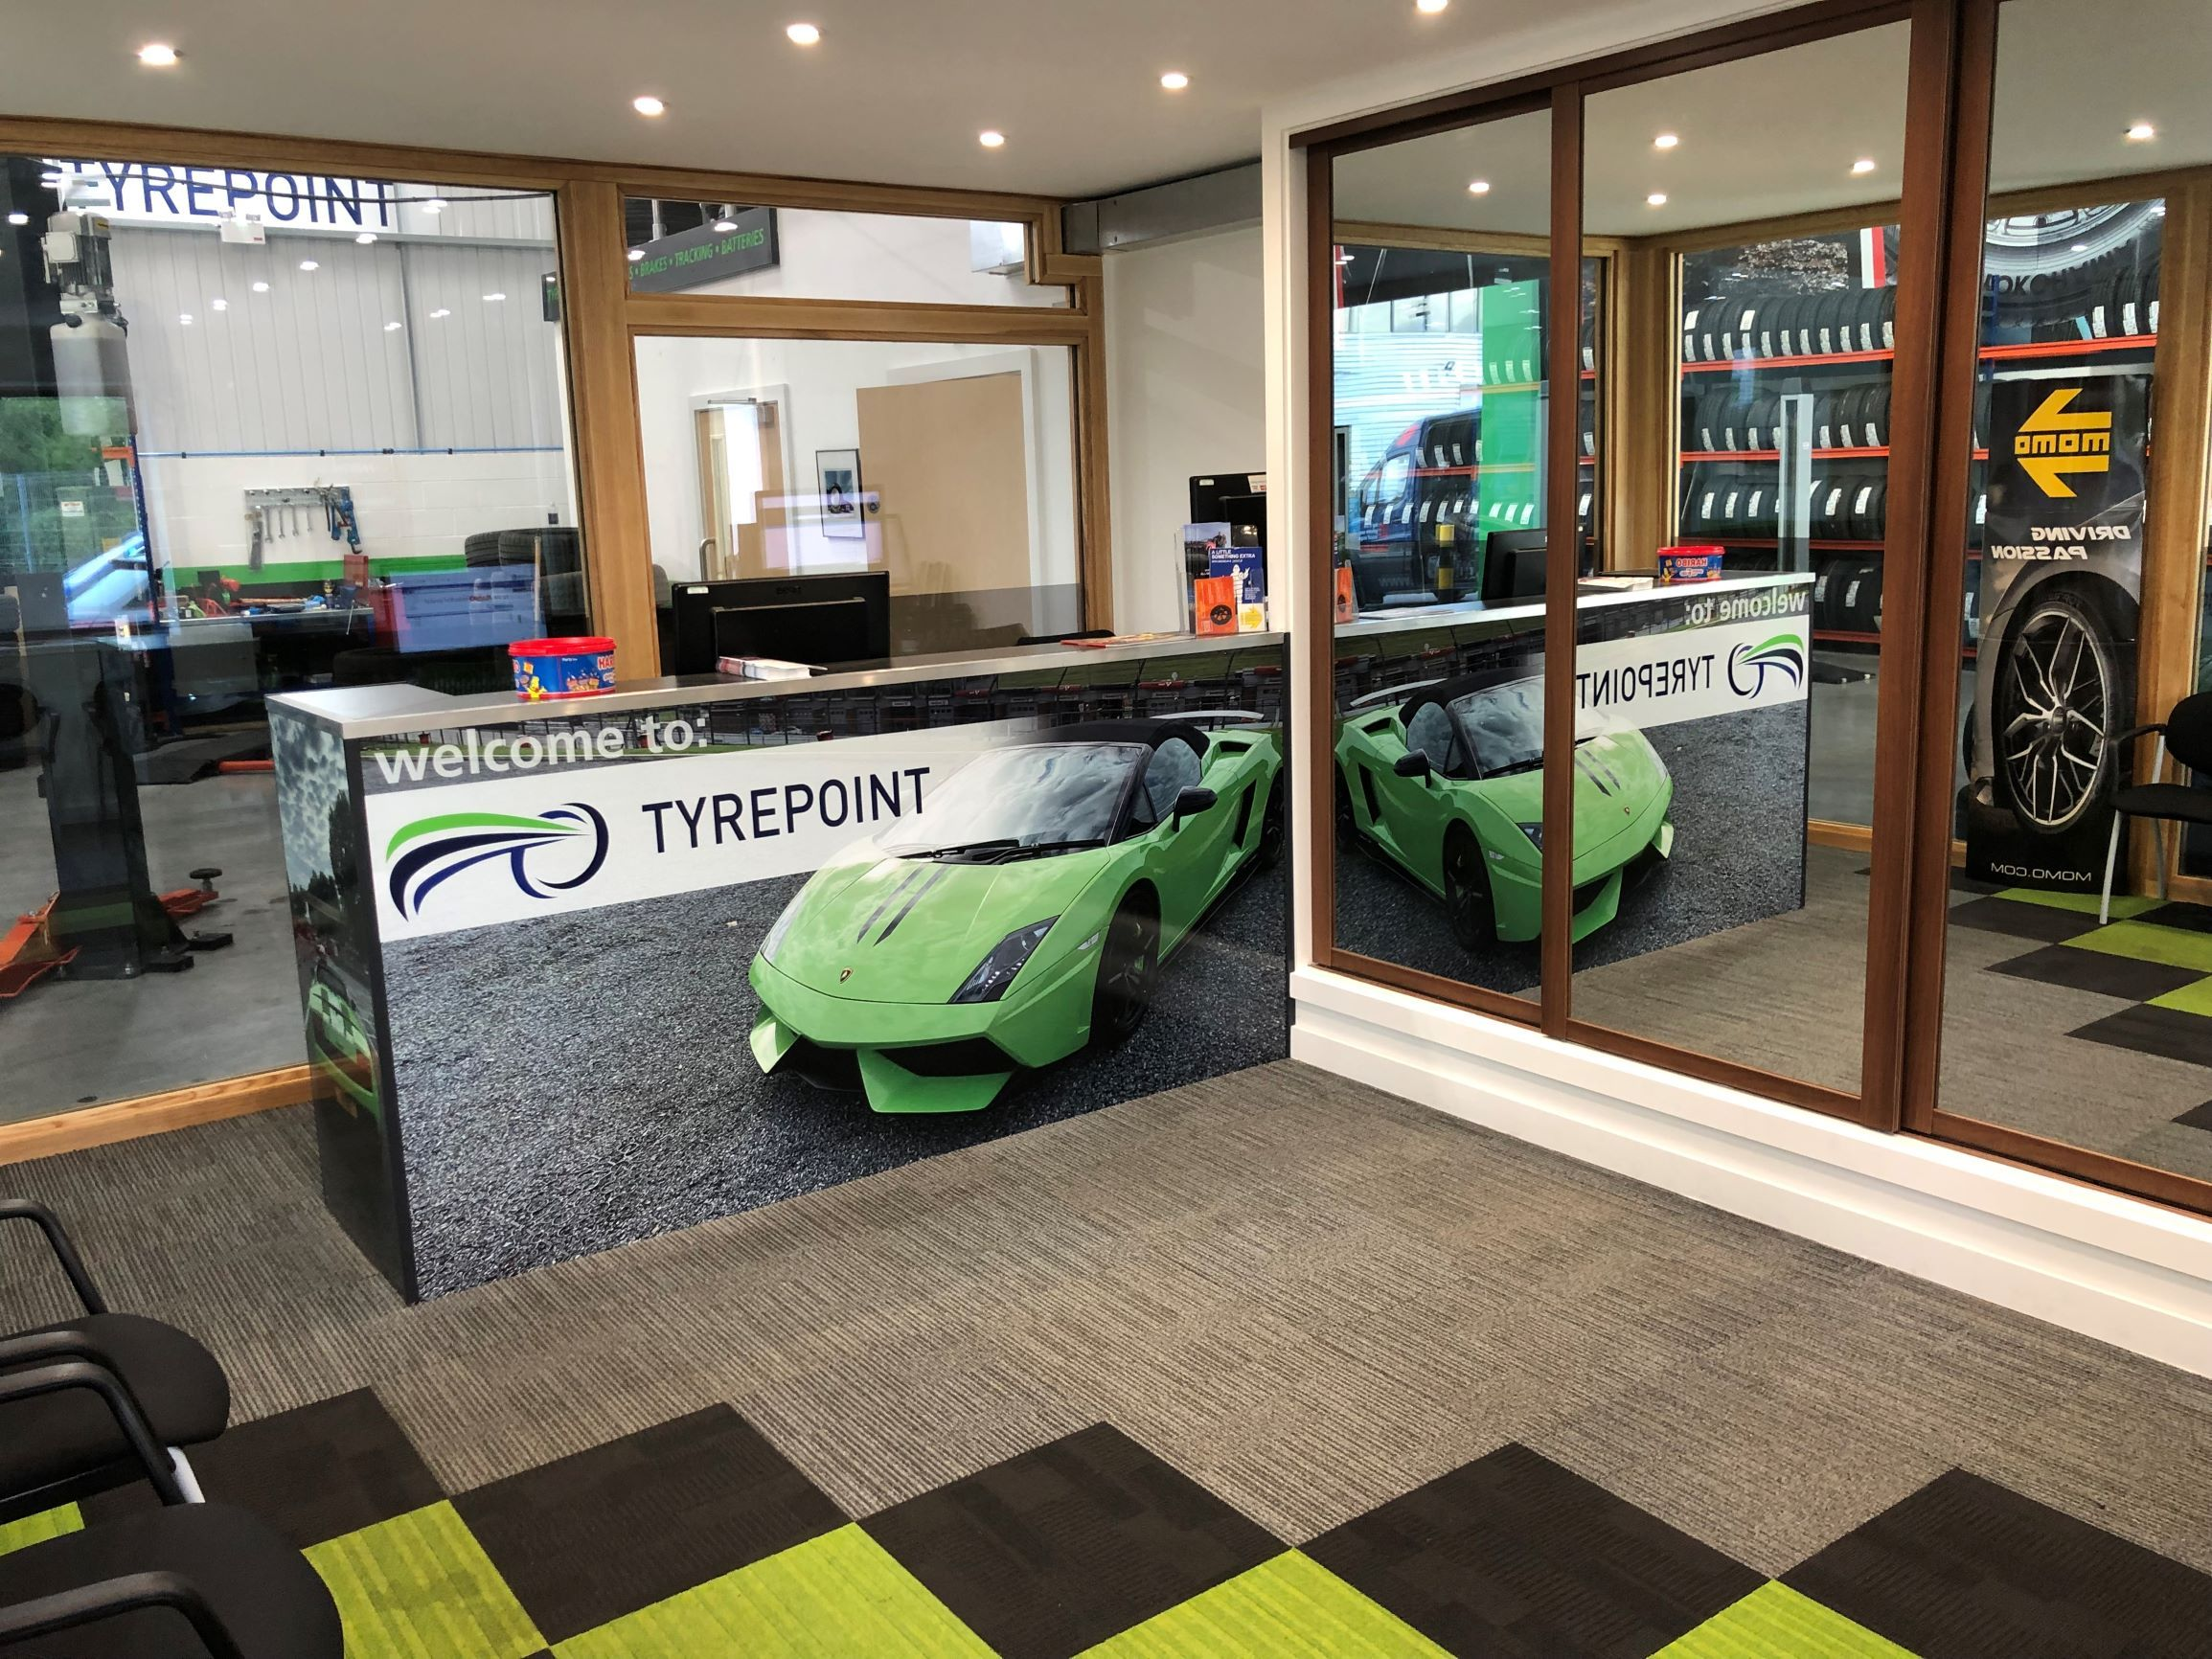 Tyre Point